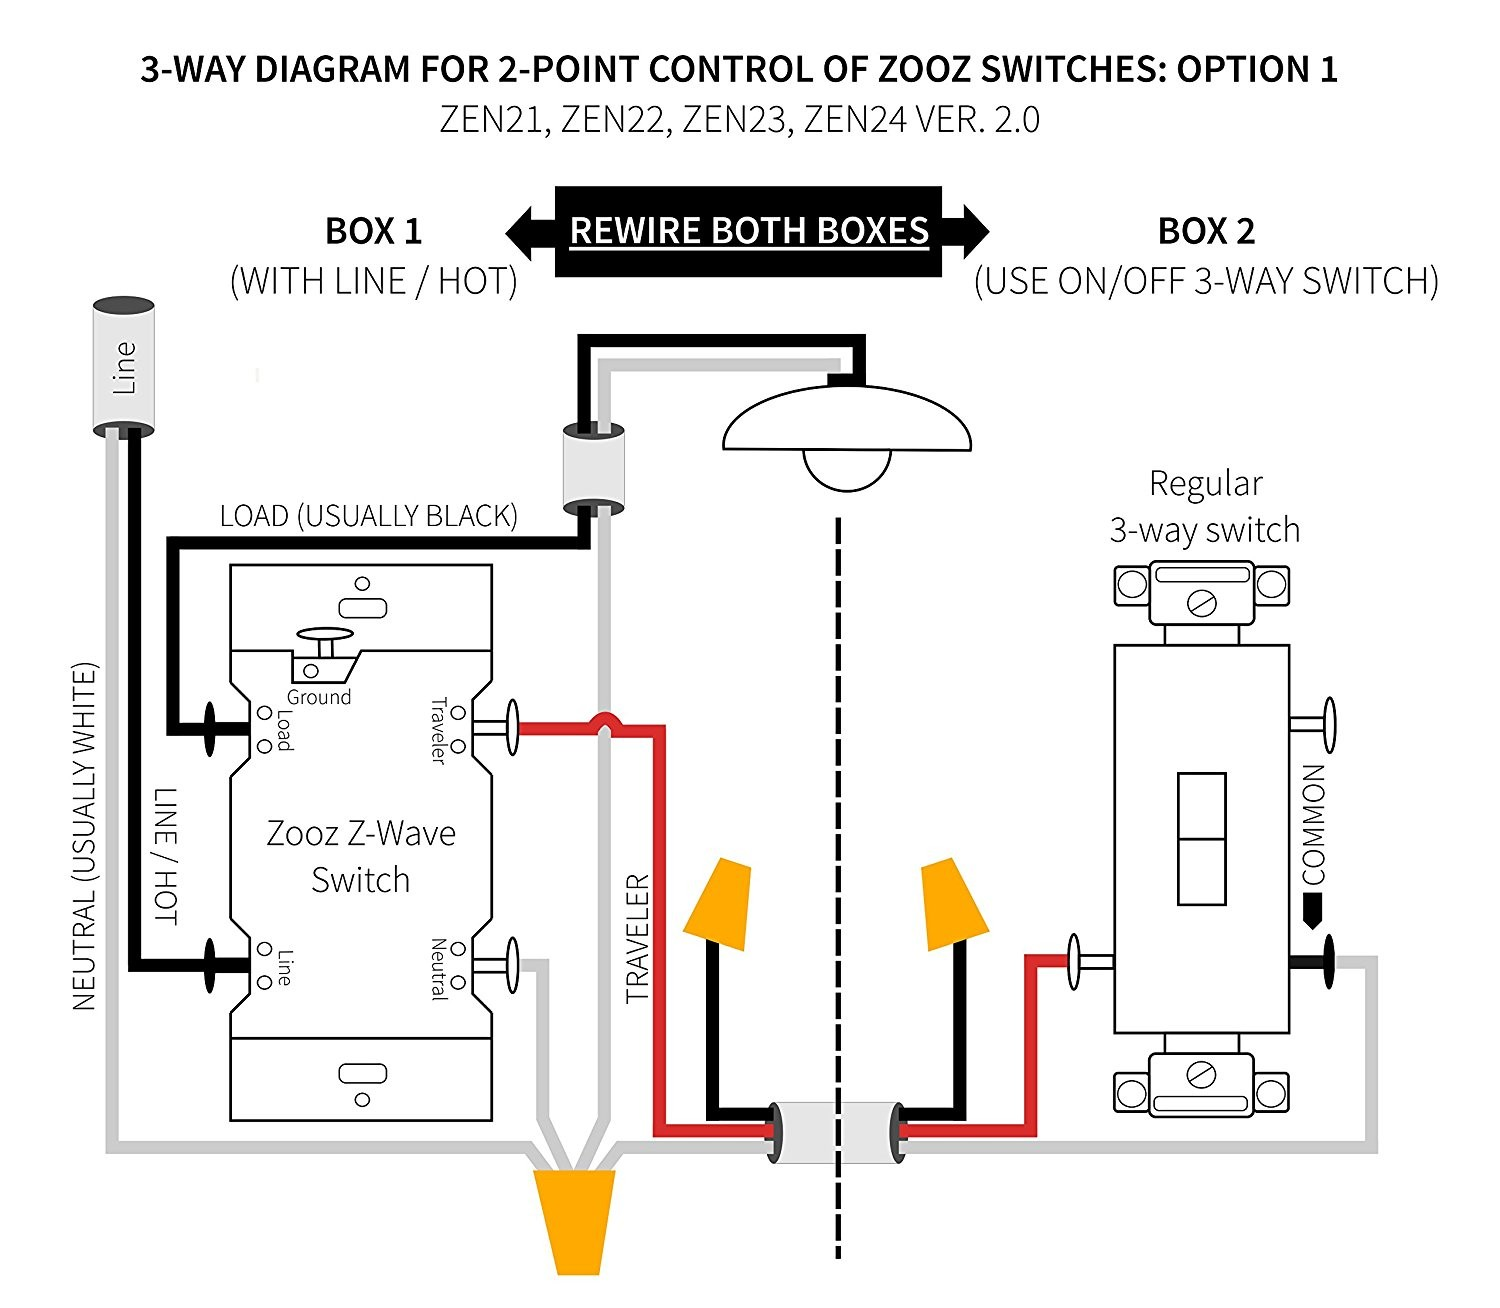 3 Wire Switch Diagram Zooz Z Wave Plus toggle Dimmer Light Switch Zen24 Ver 2 0 White Of 3 Wire Switch Diagram